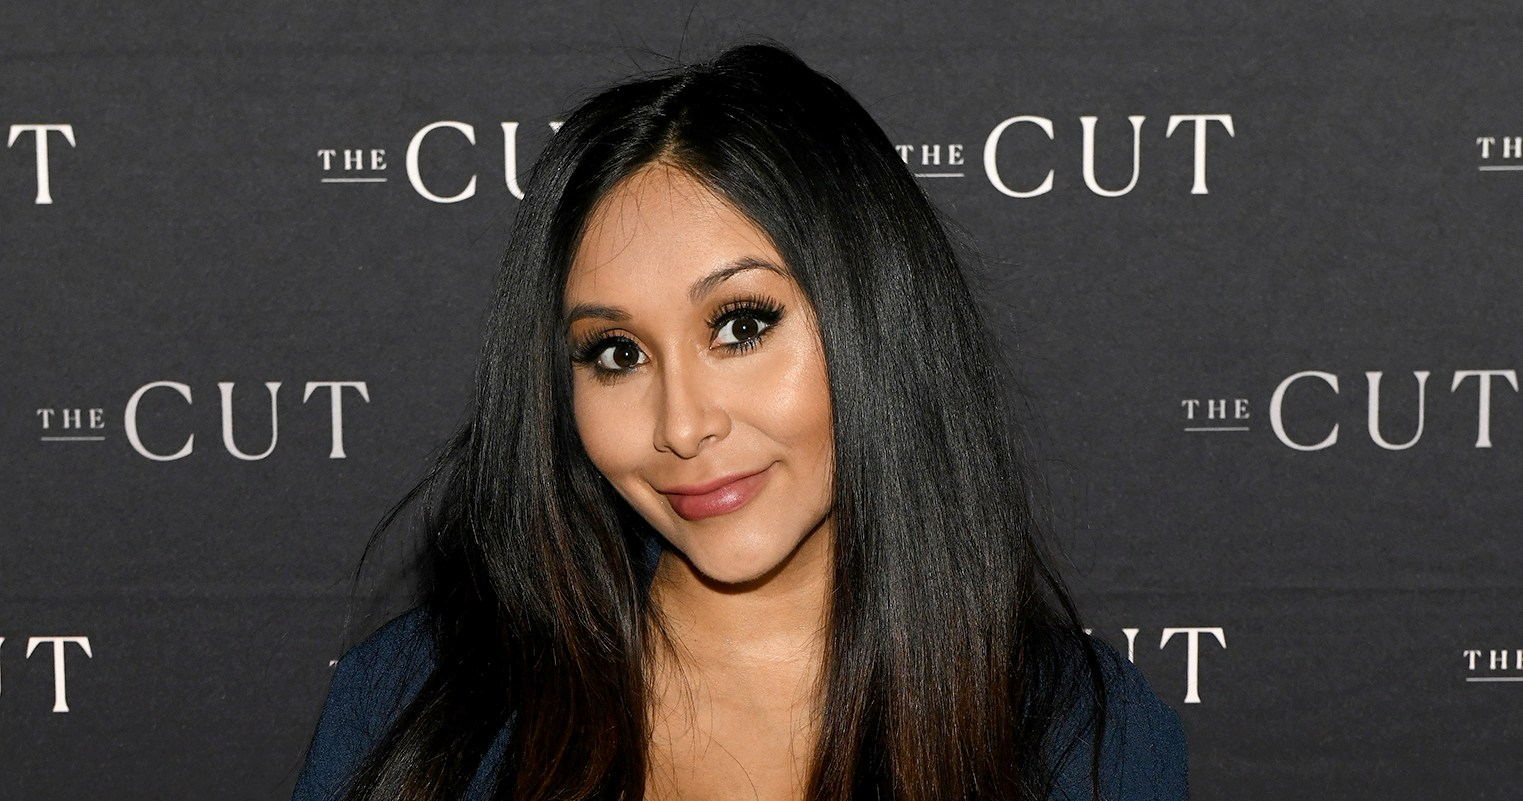 Nicole 'Snooki' Polizzi Is 'Miserable' Waiting for Baby No. 3